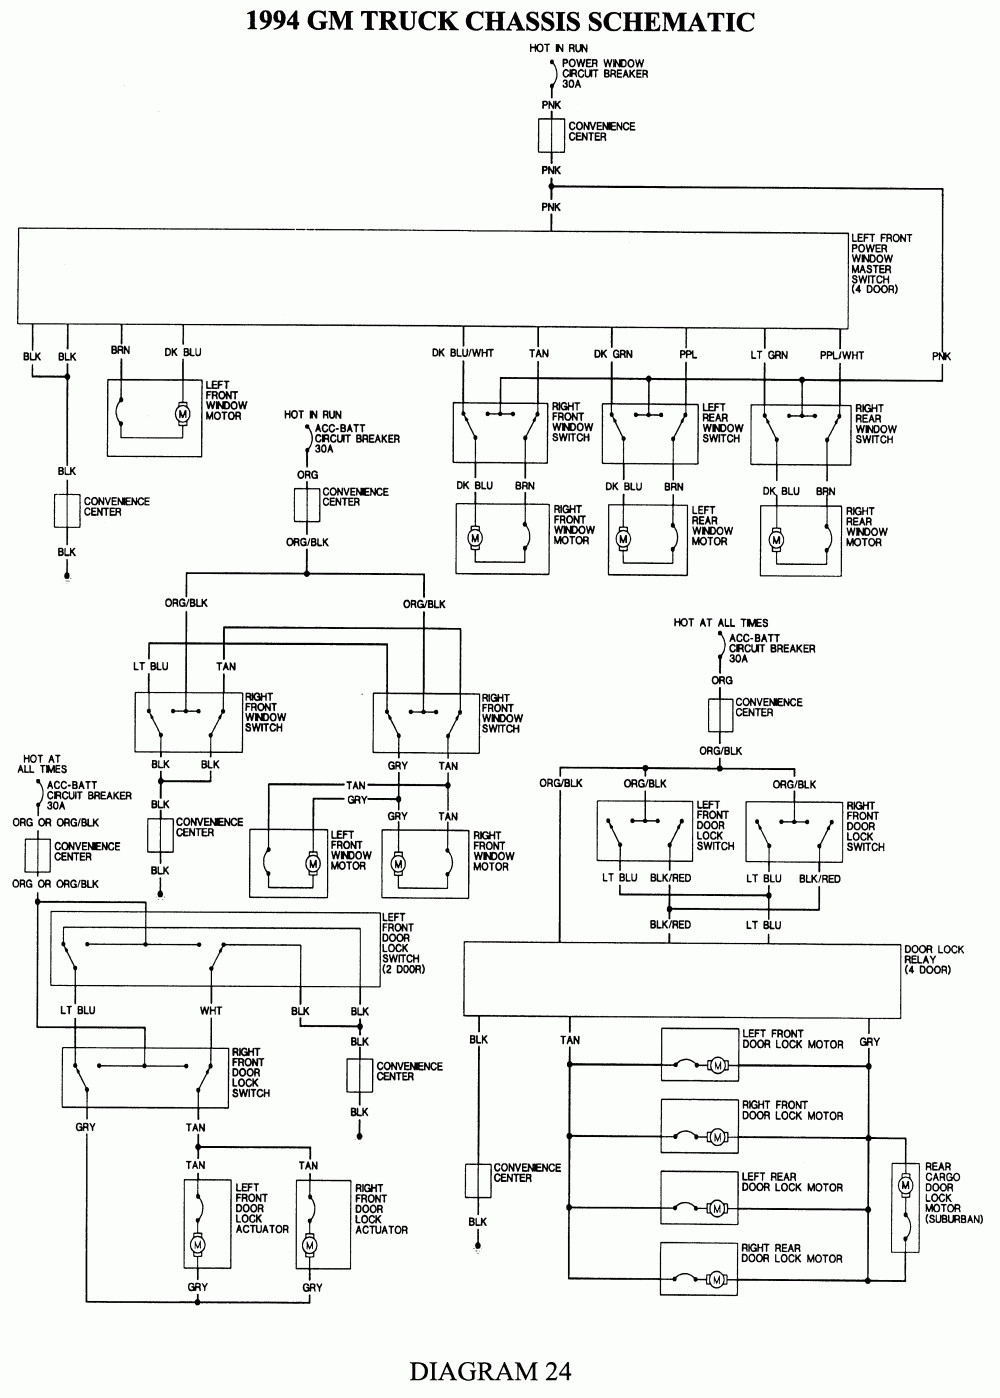 2000 Chevy Silverado Wiring Diagram